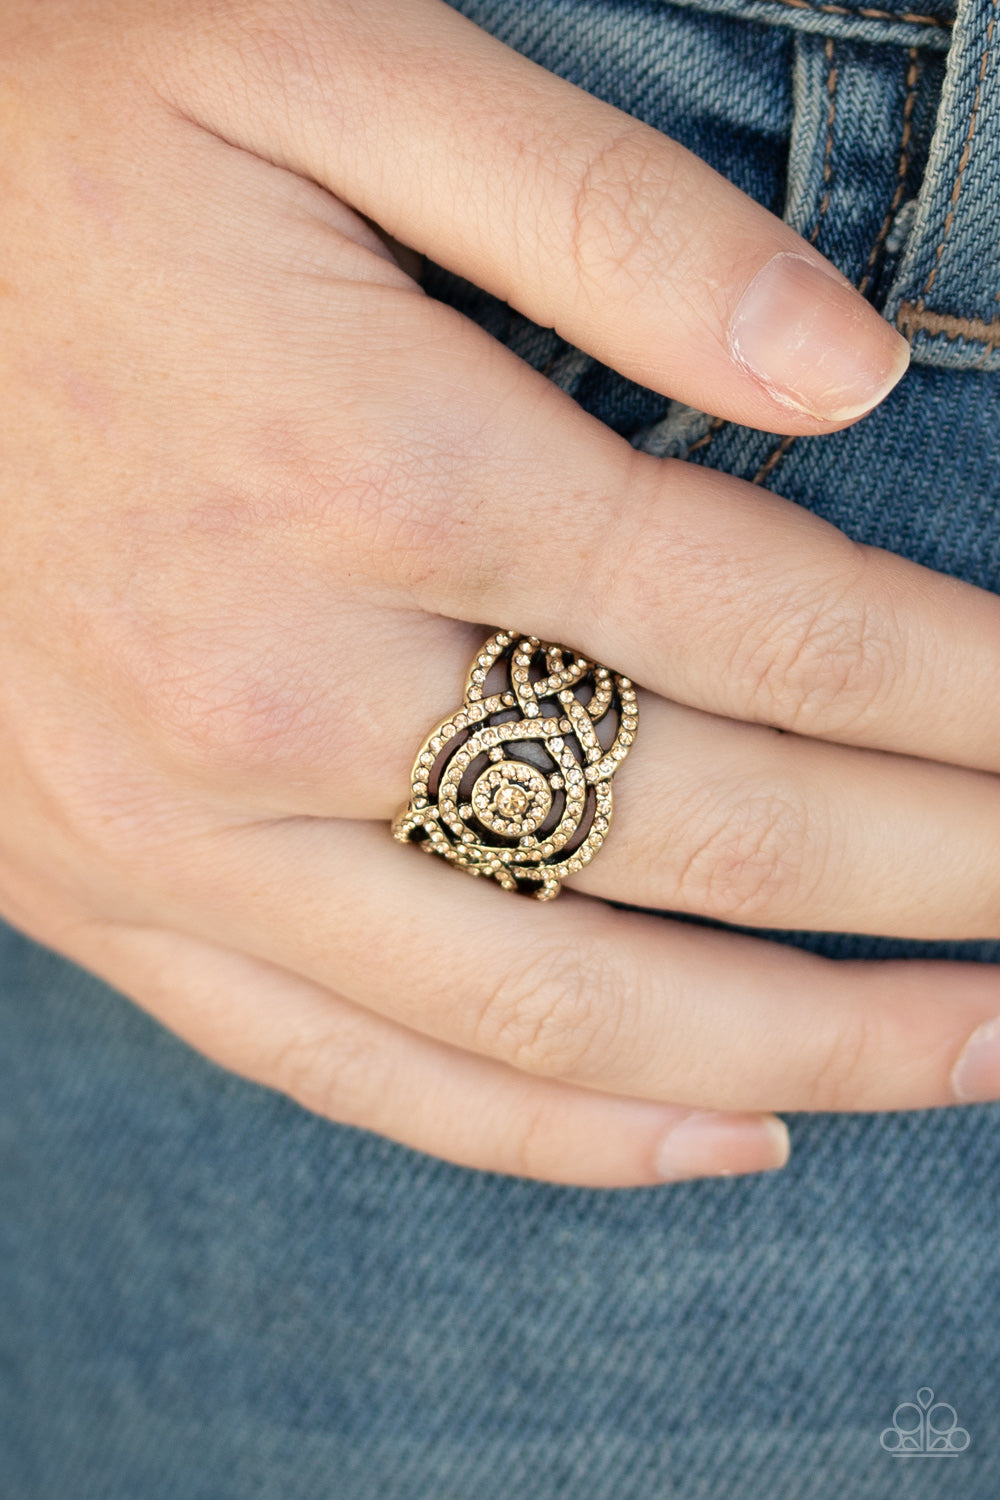 Paparazzi Jewelry & Accessories - COUNTESS To Ten - Brown Ring. Bling By Titia Boutique